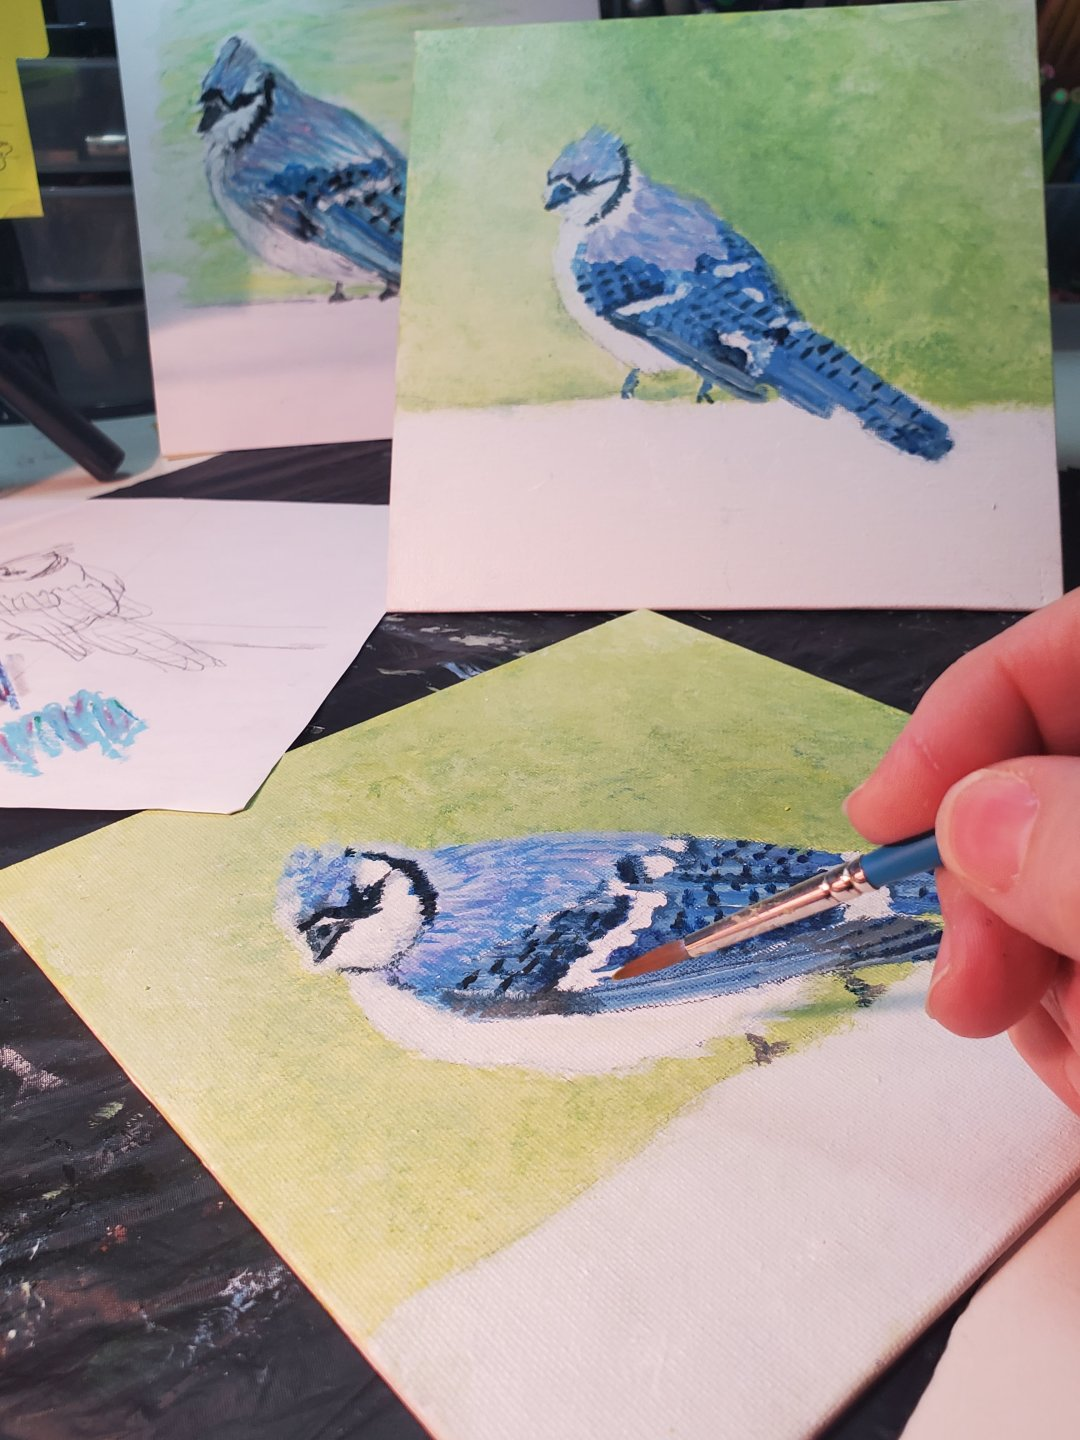 Conservation artist, snow artist, nature artist, famous artist, Artistic confidence,  artistic motivation, how to remove artist blocks, Pet portraits, feng shui art for the livingroom, feng shui art, n artist, local artist, master artist, female artist, bird art, nature art, modern art, expressionistic art, white art, teaching artist, increase creativity, Sandra Mucha, Sandra Mucha Artwork, art lessons, virtual art lessons, acrylics for beginners, watercolors for beginners, art exploring